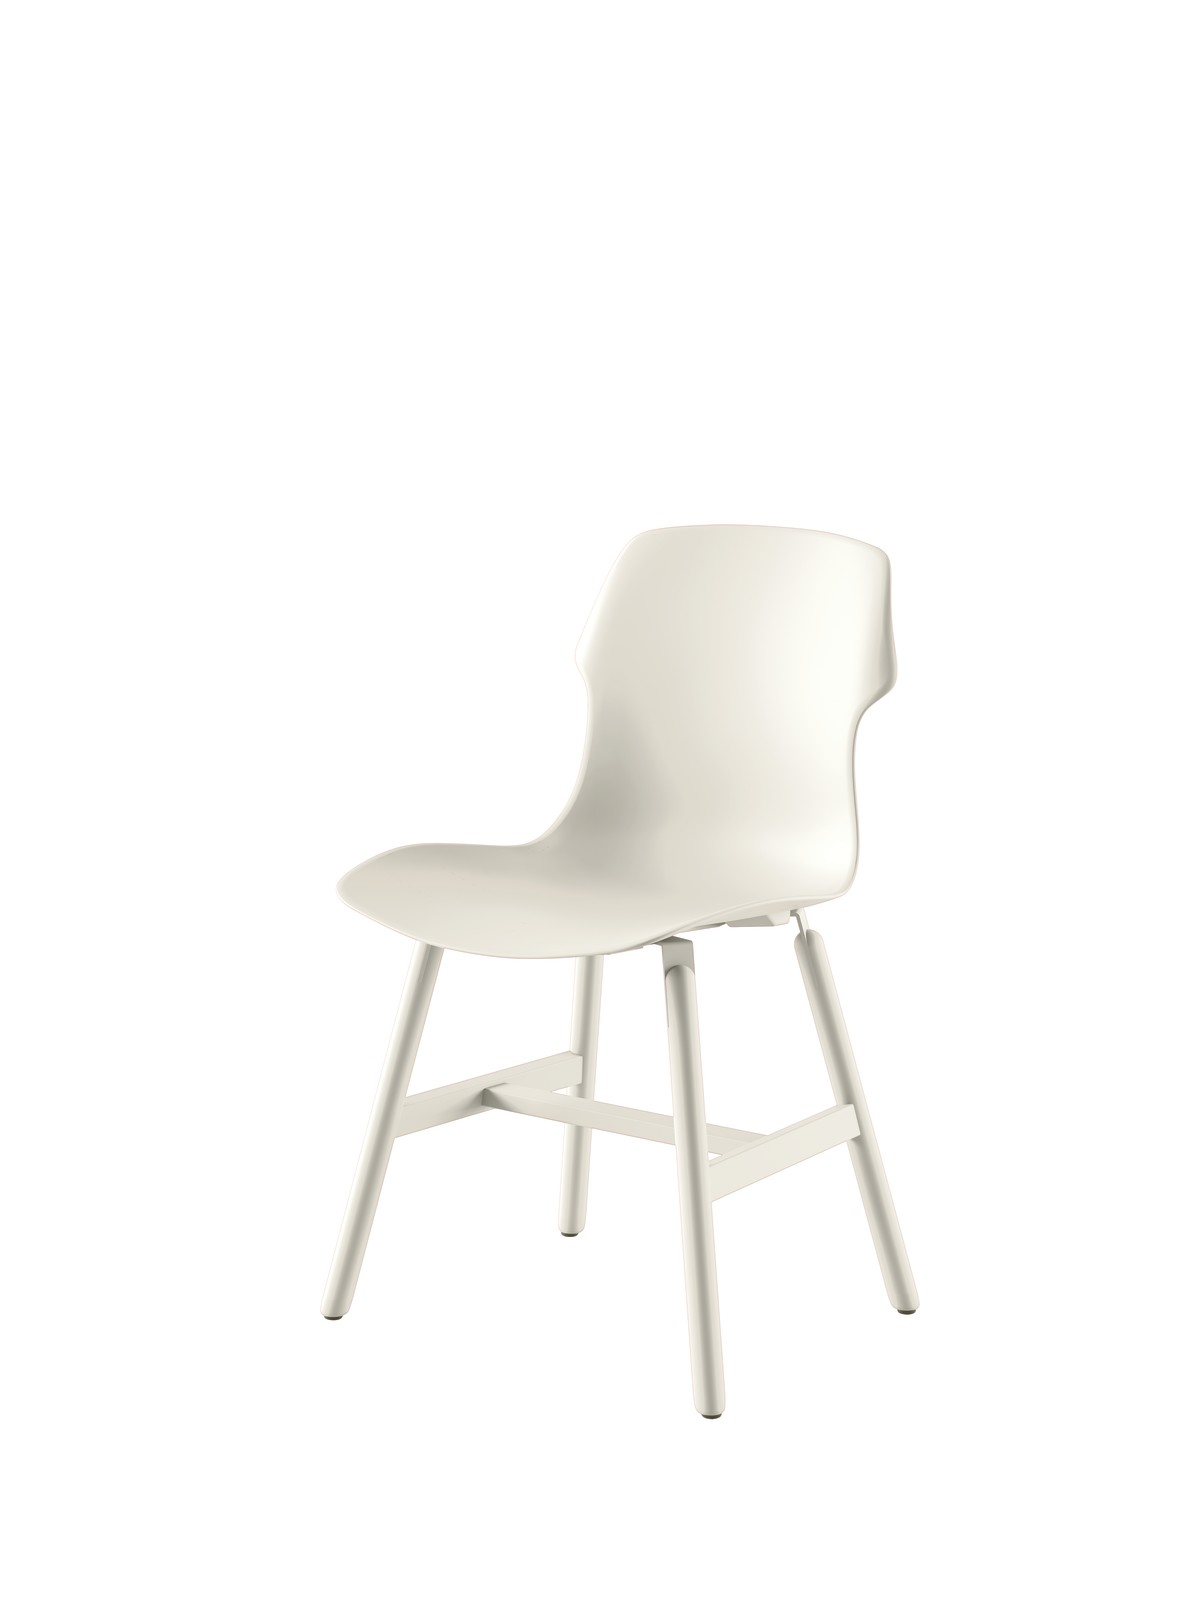 Stereo Metal Chair - Set of 2 Ivory White